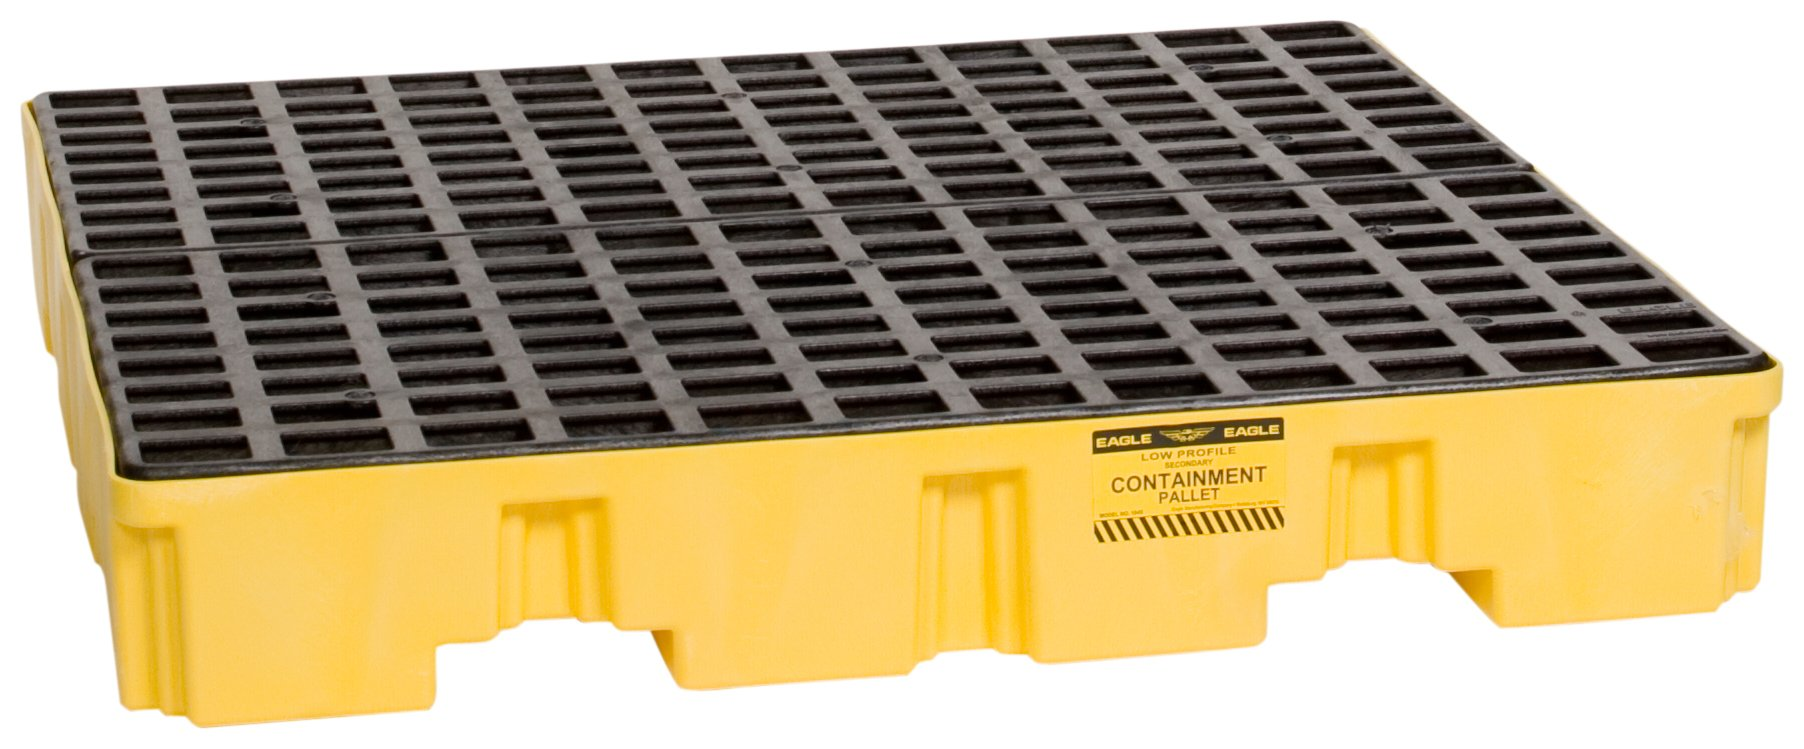 Eagle 1645 Yellow and Black Polyethylene 4 Drum Low Profile Spill Containment Pallet with Flat Top Grating, 8000 lbs Load Capacity, 51.5'' Length, 51.5'' Width, 8'' Height